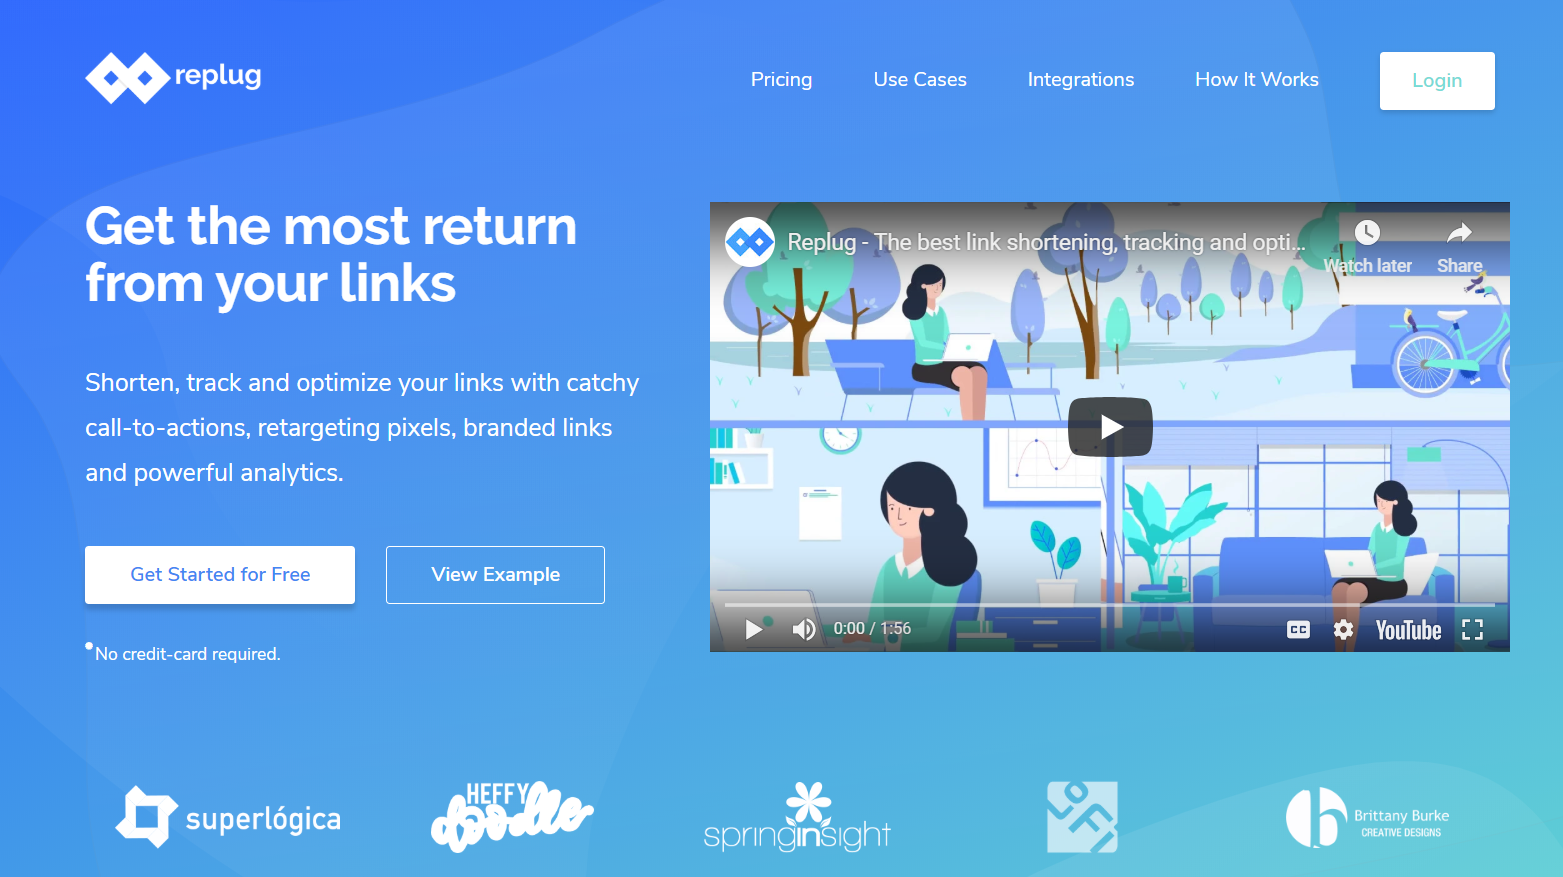 Replug.io Review- Get extra traffic and leads from your shared links